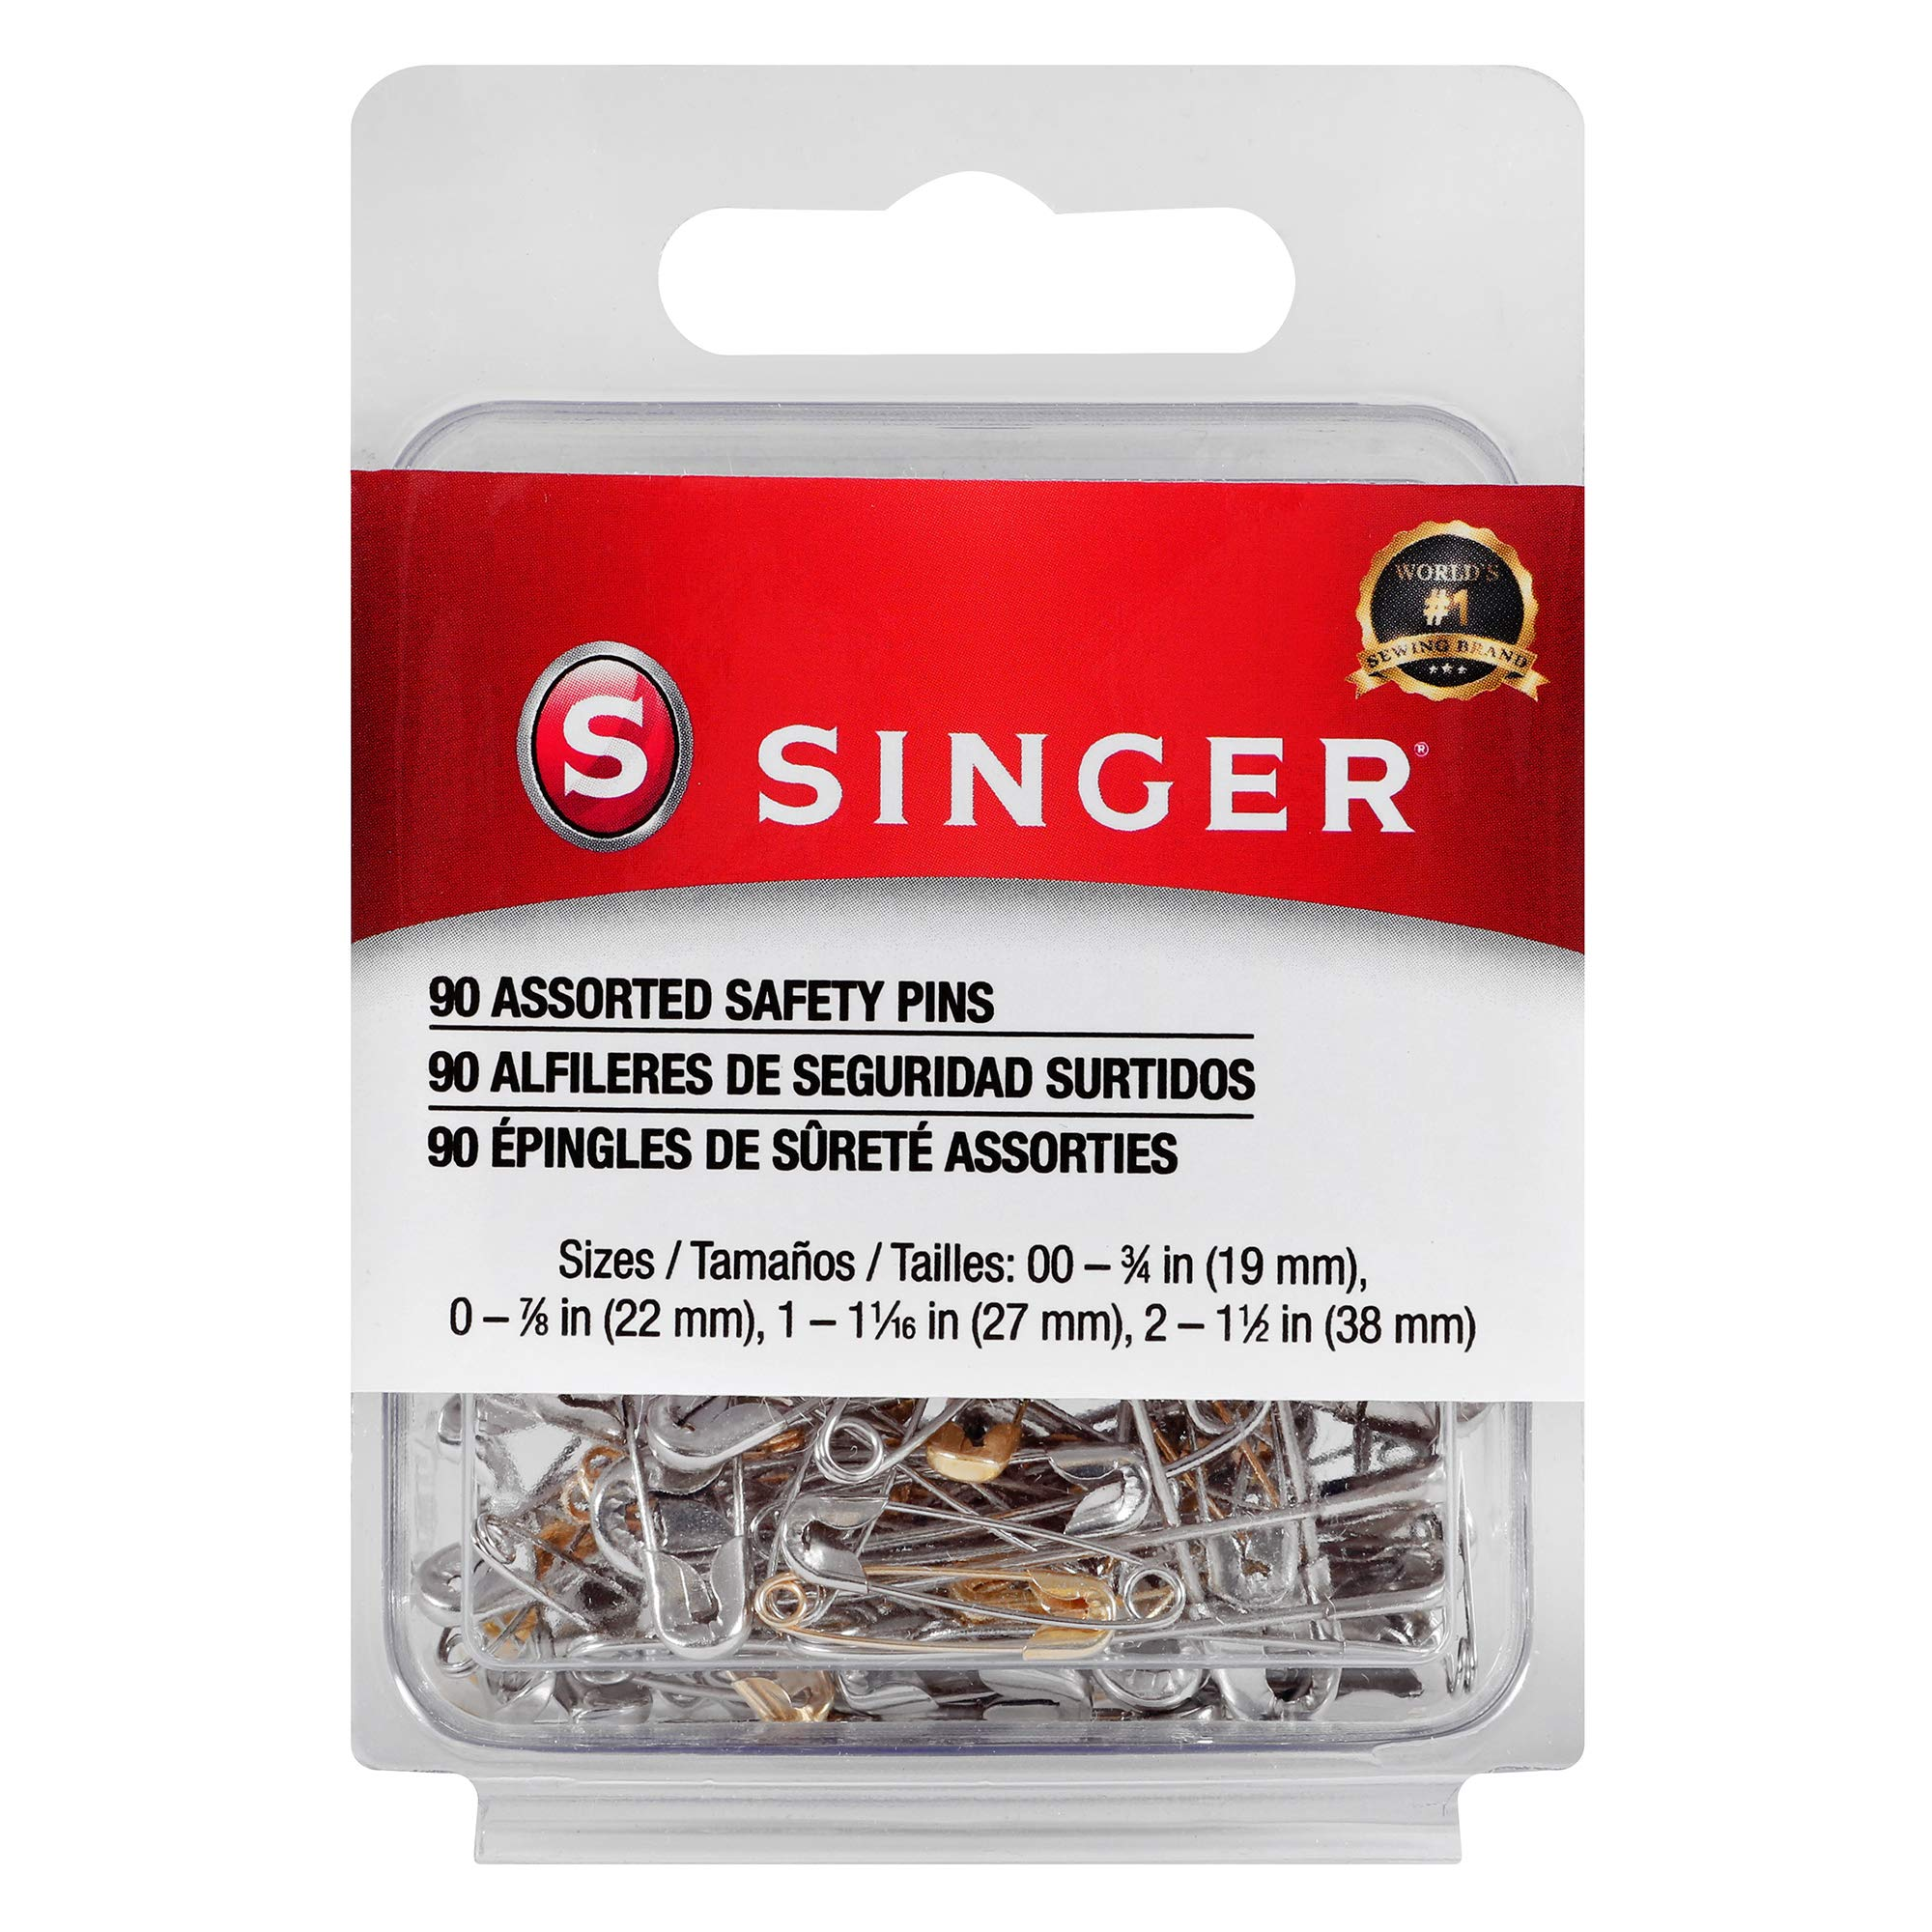 SINGER 00221 Assorted Safety Pins, Multisize, 90-Count